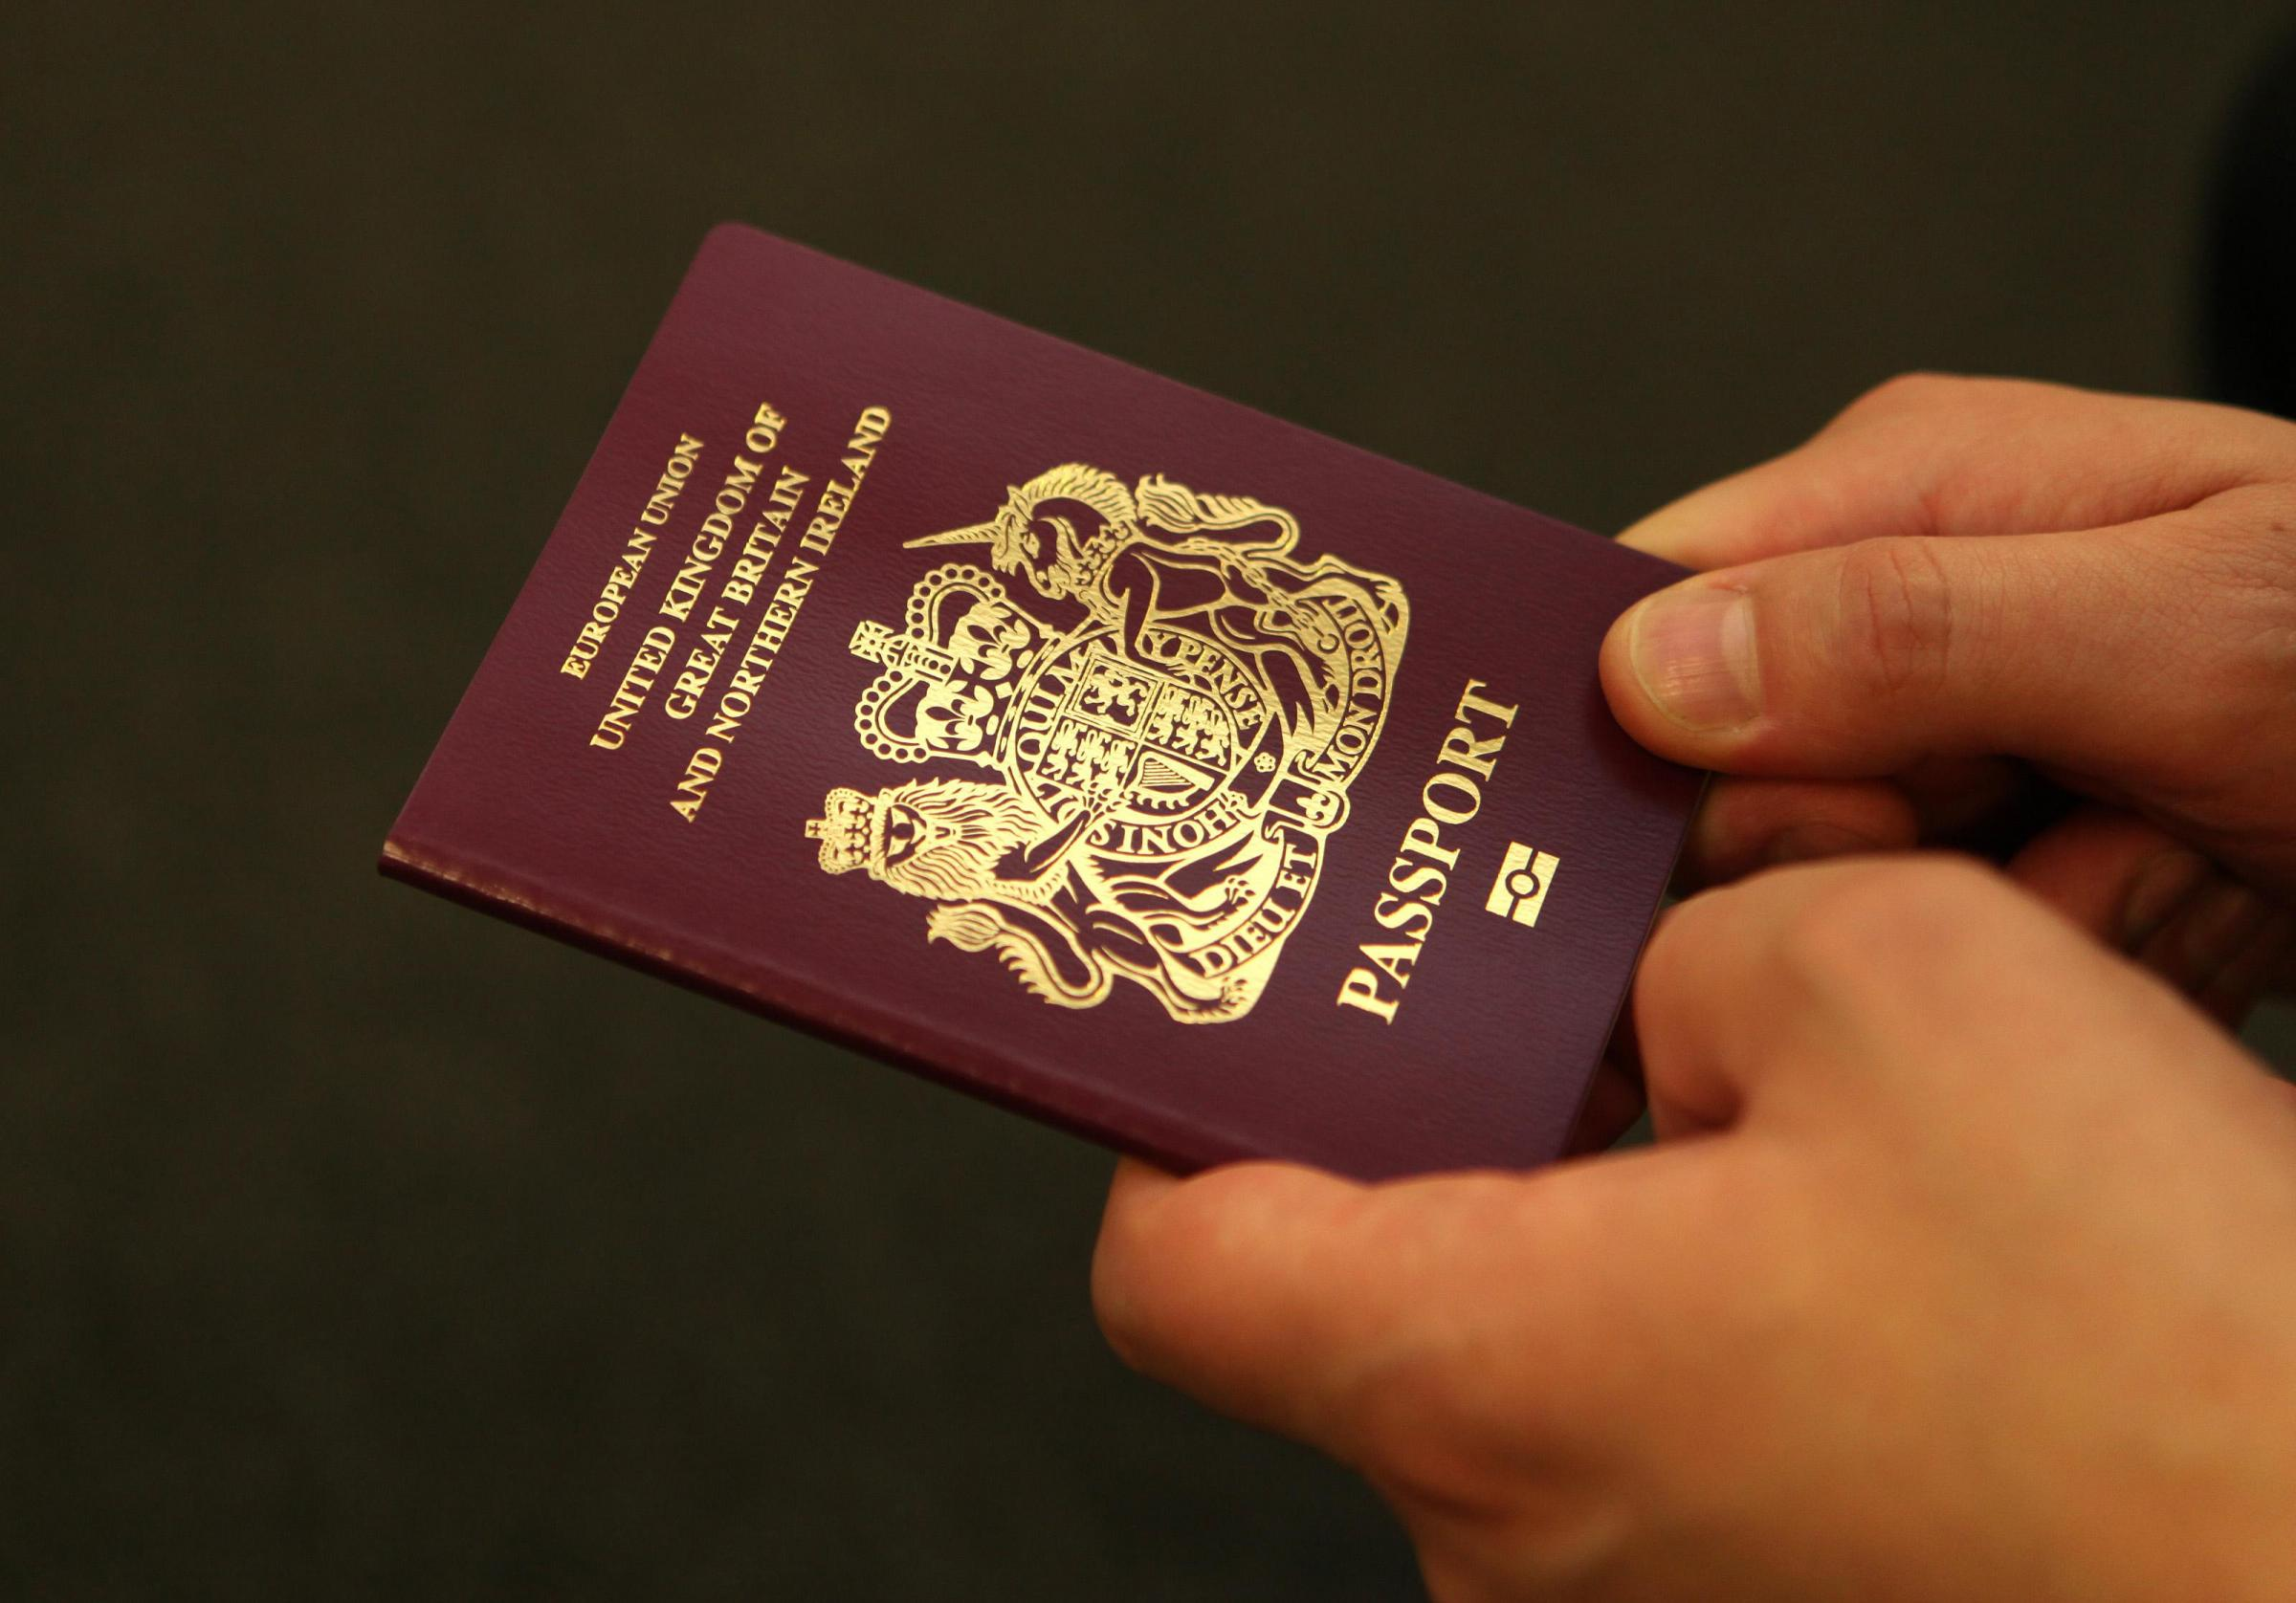 Home Office urges people to check passport expiry dates ahead of Brexit